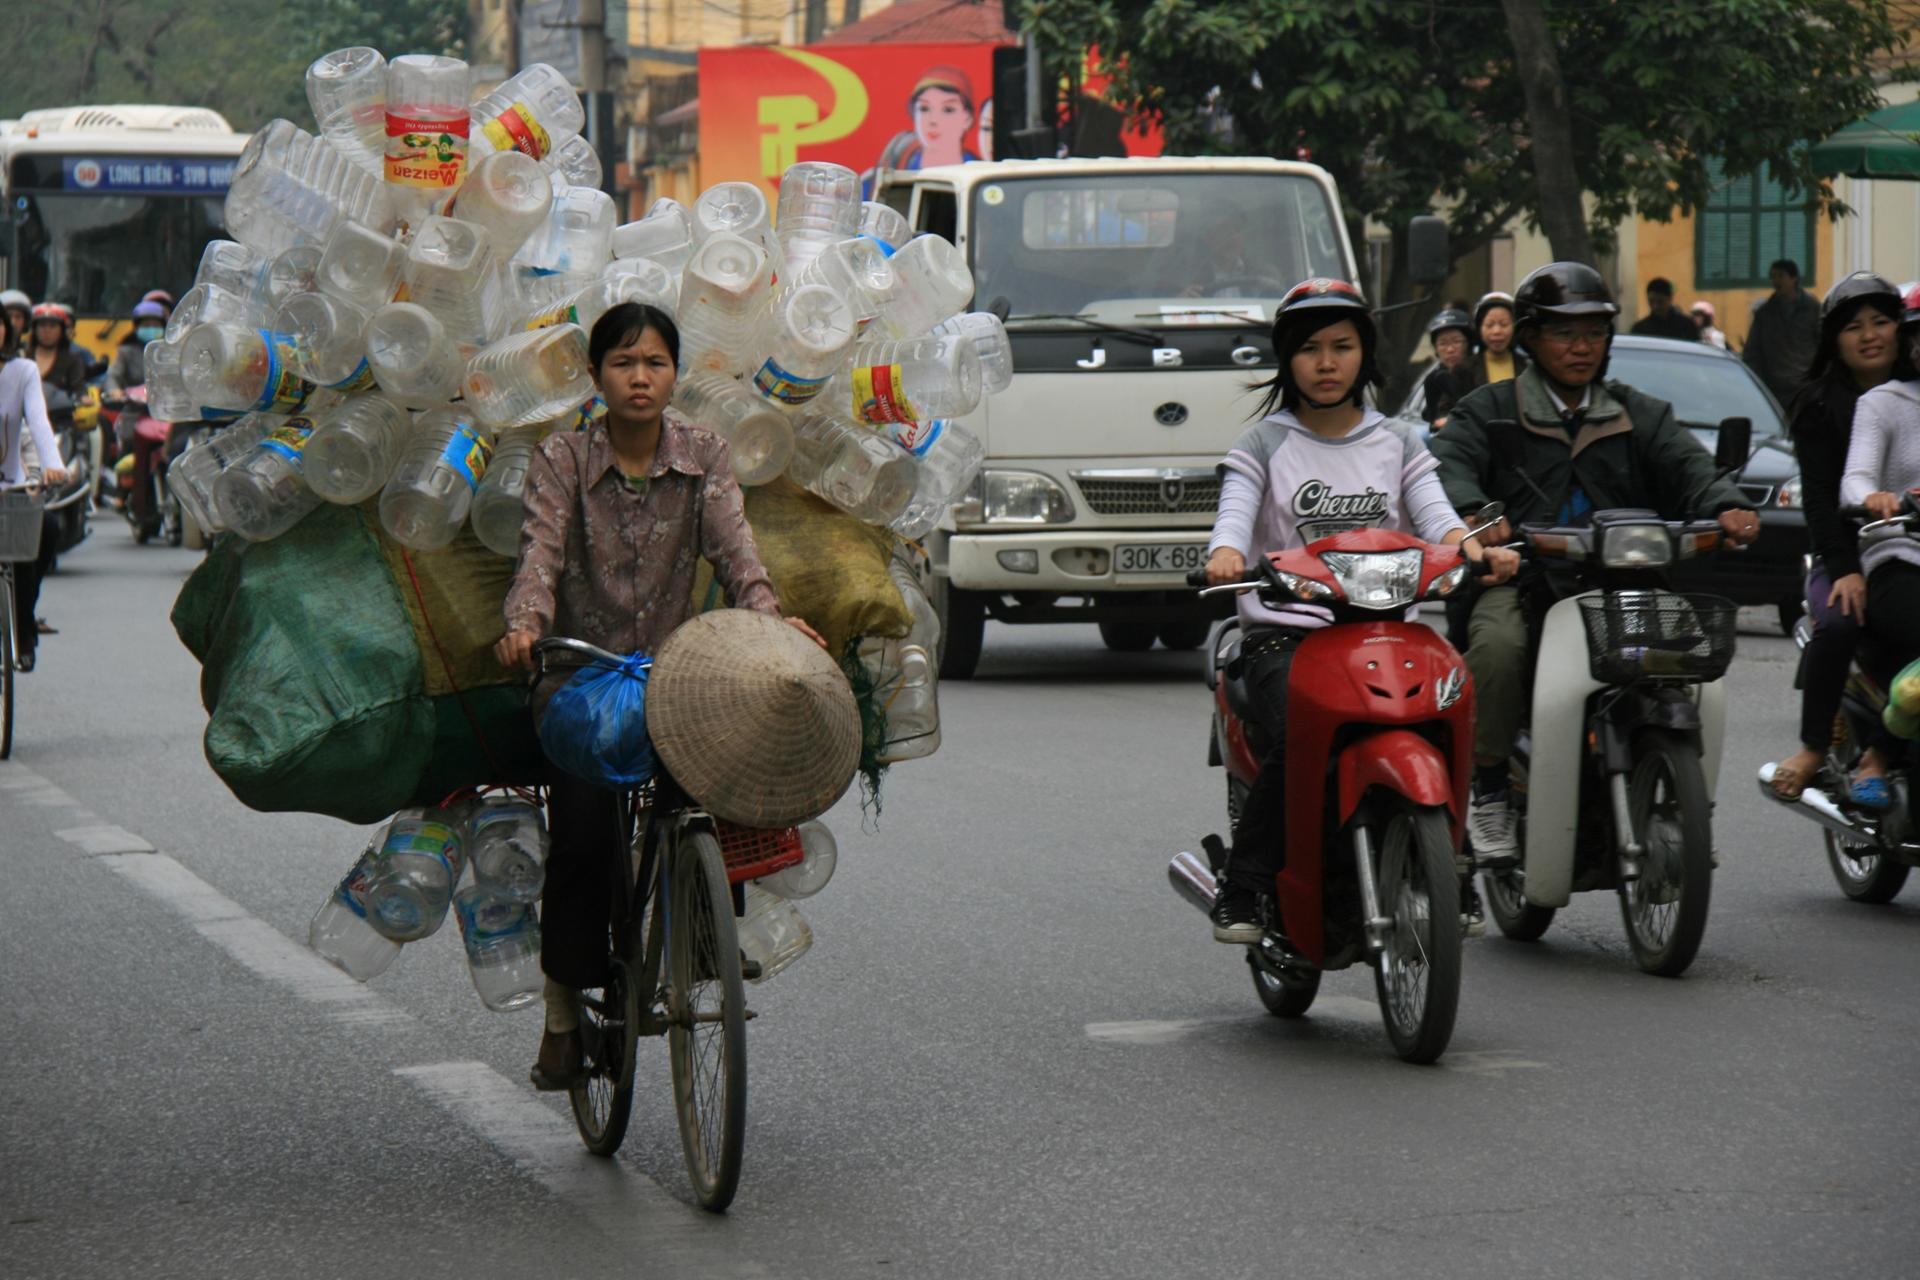 A woman is transporting plastic bottles on her bike in a street of Hanoi (Vietnam).